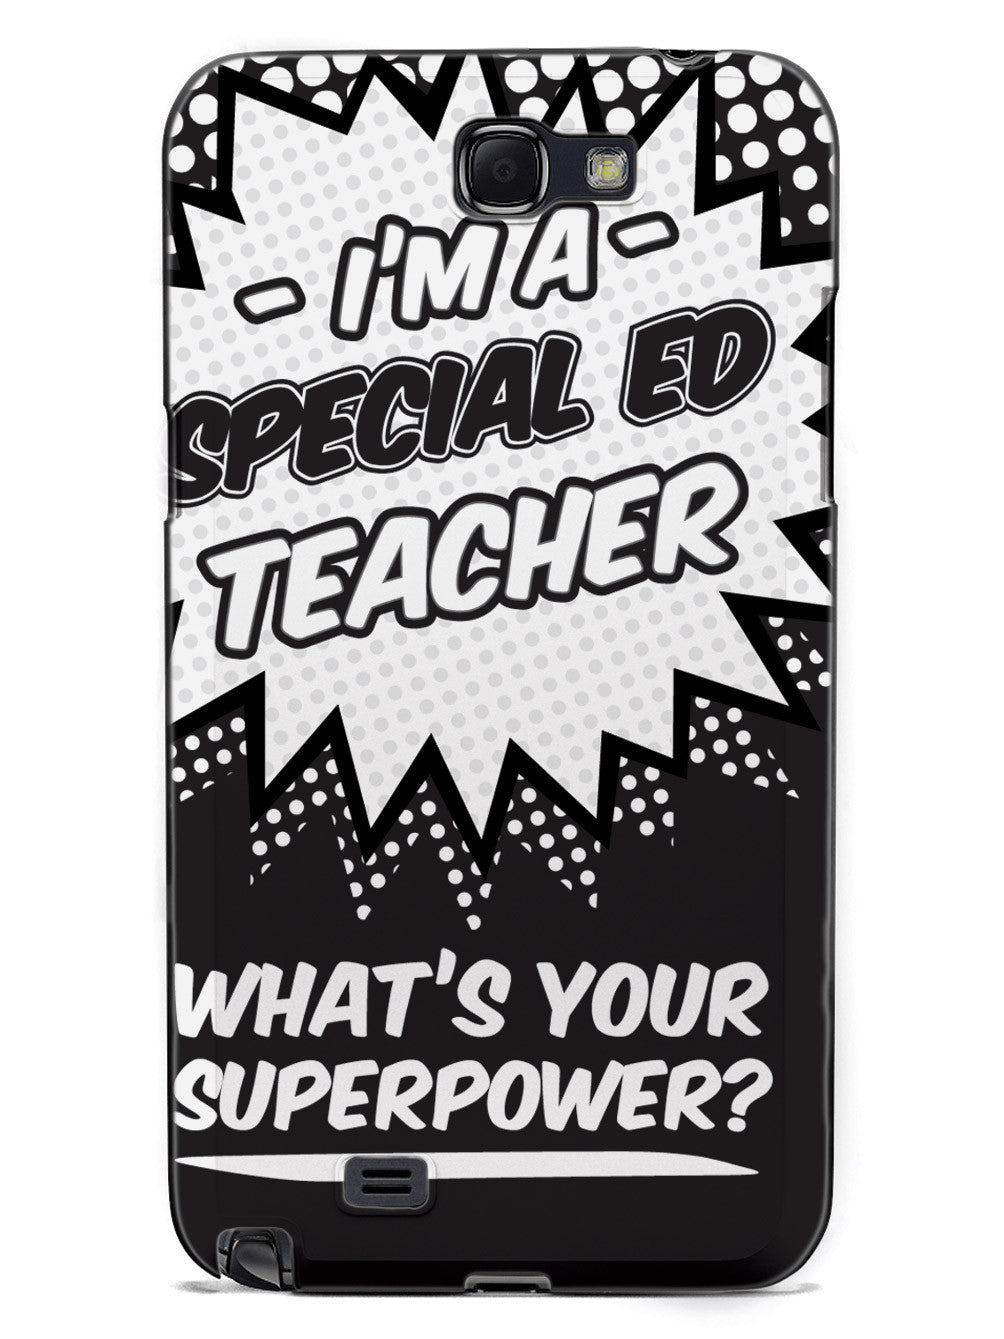 Special Ed Teacher - What's Your Superpower? Case